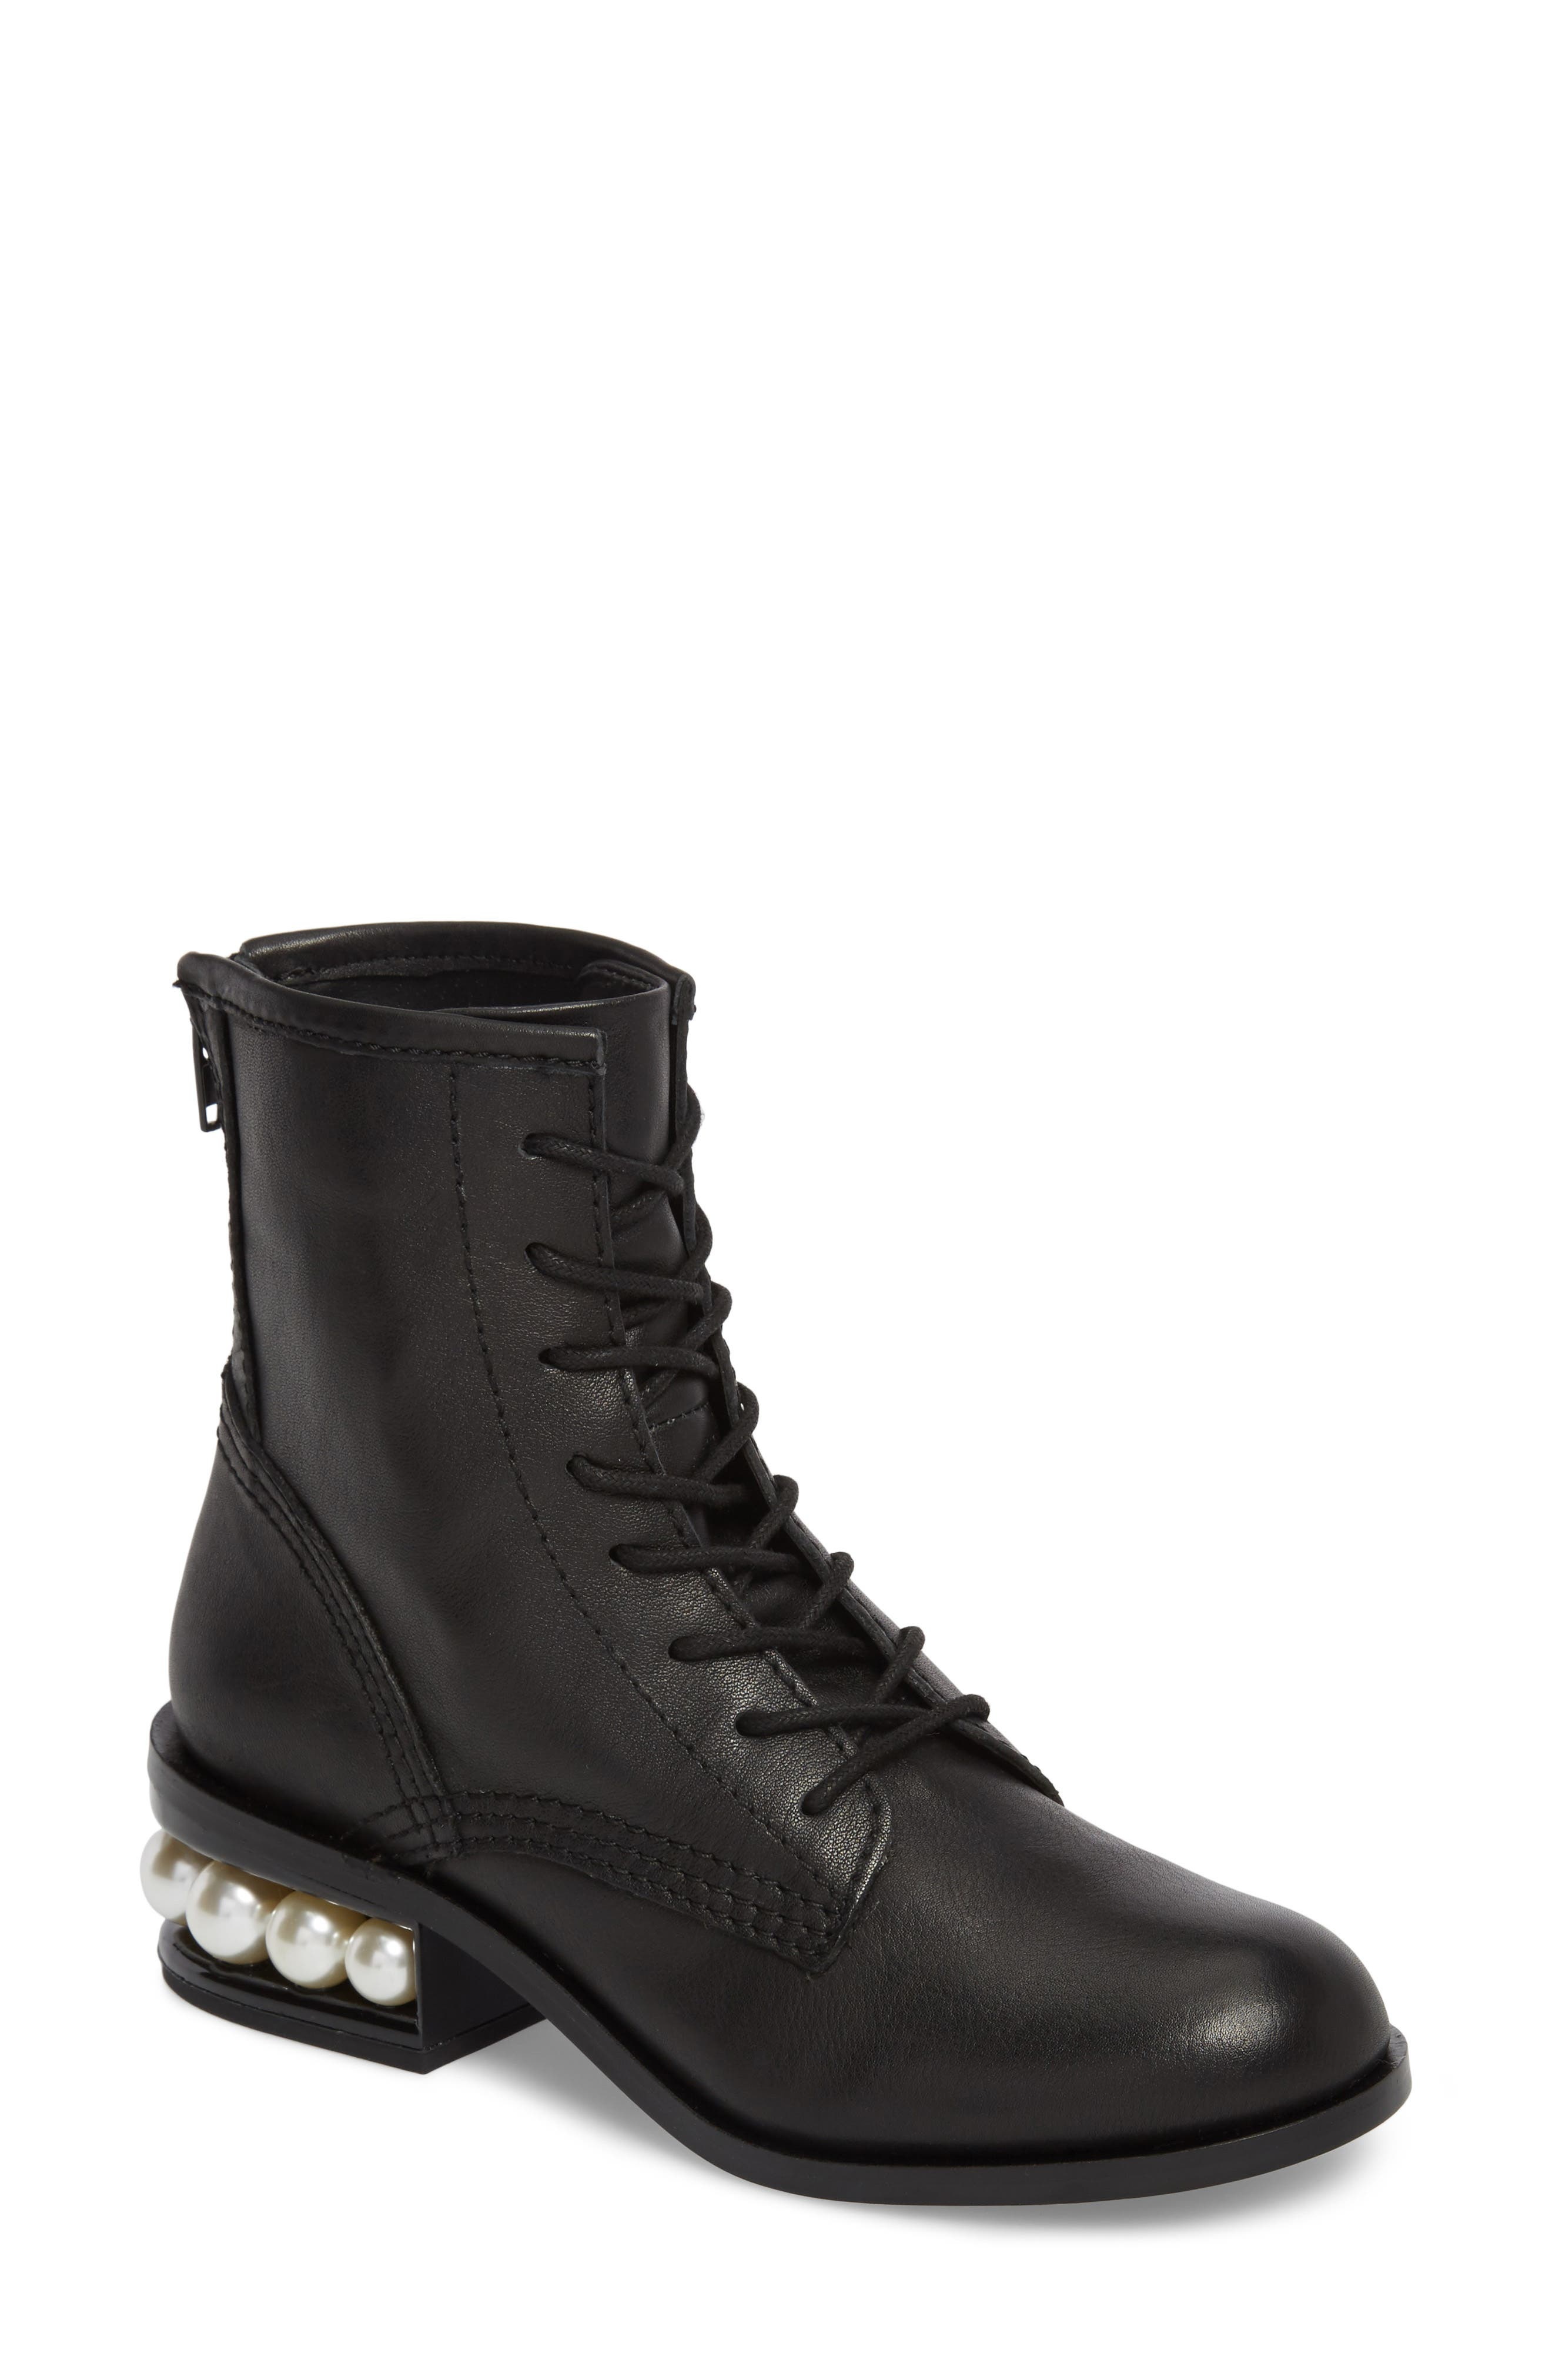 Pixy Statement Heel Boot,                         Main,                         color, Black Leather